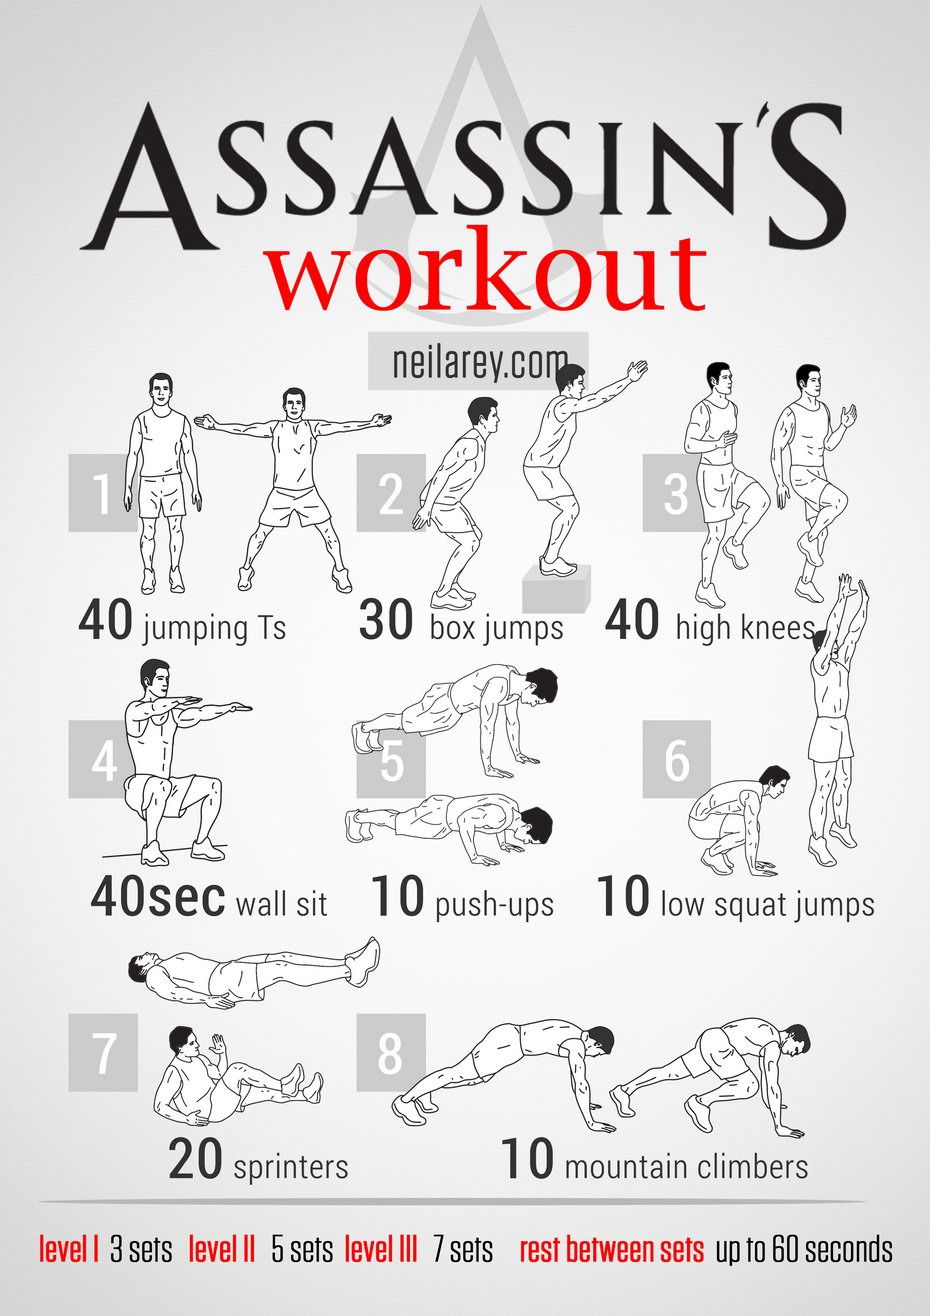 I love these workout styles! They don't need any equipment and they give you all the different levels.